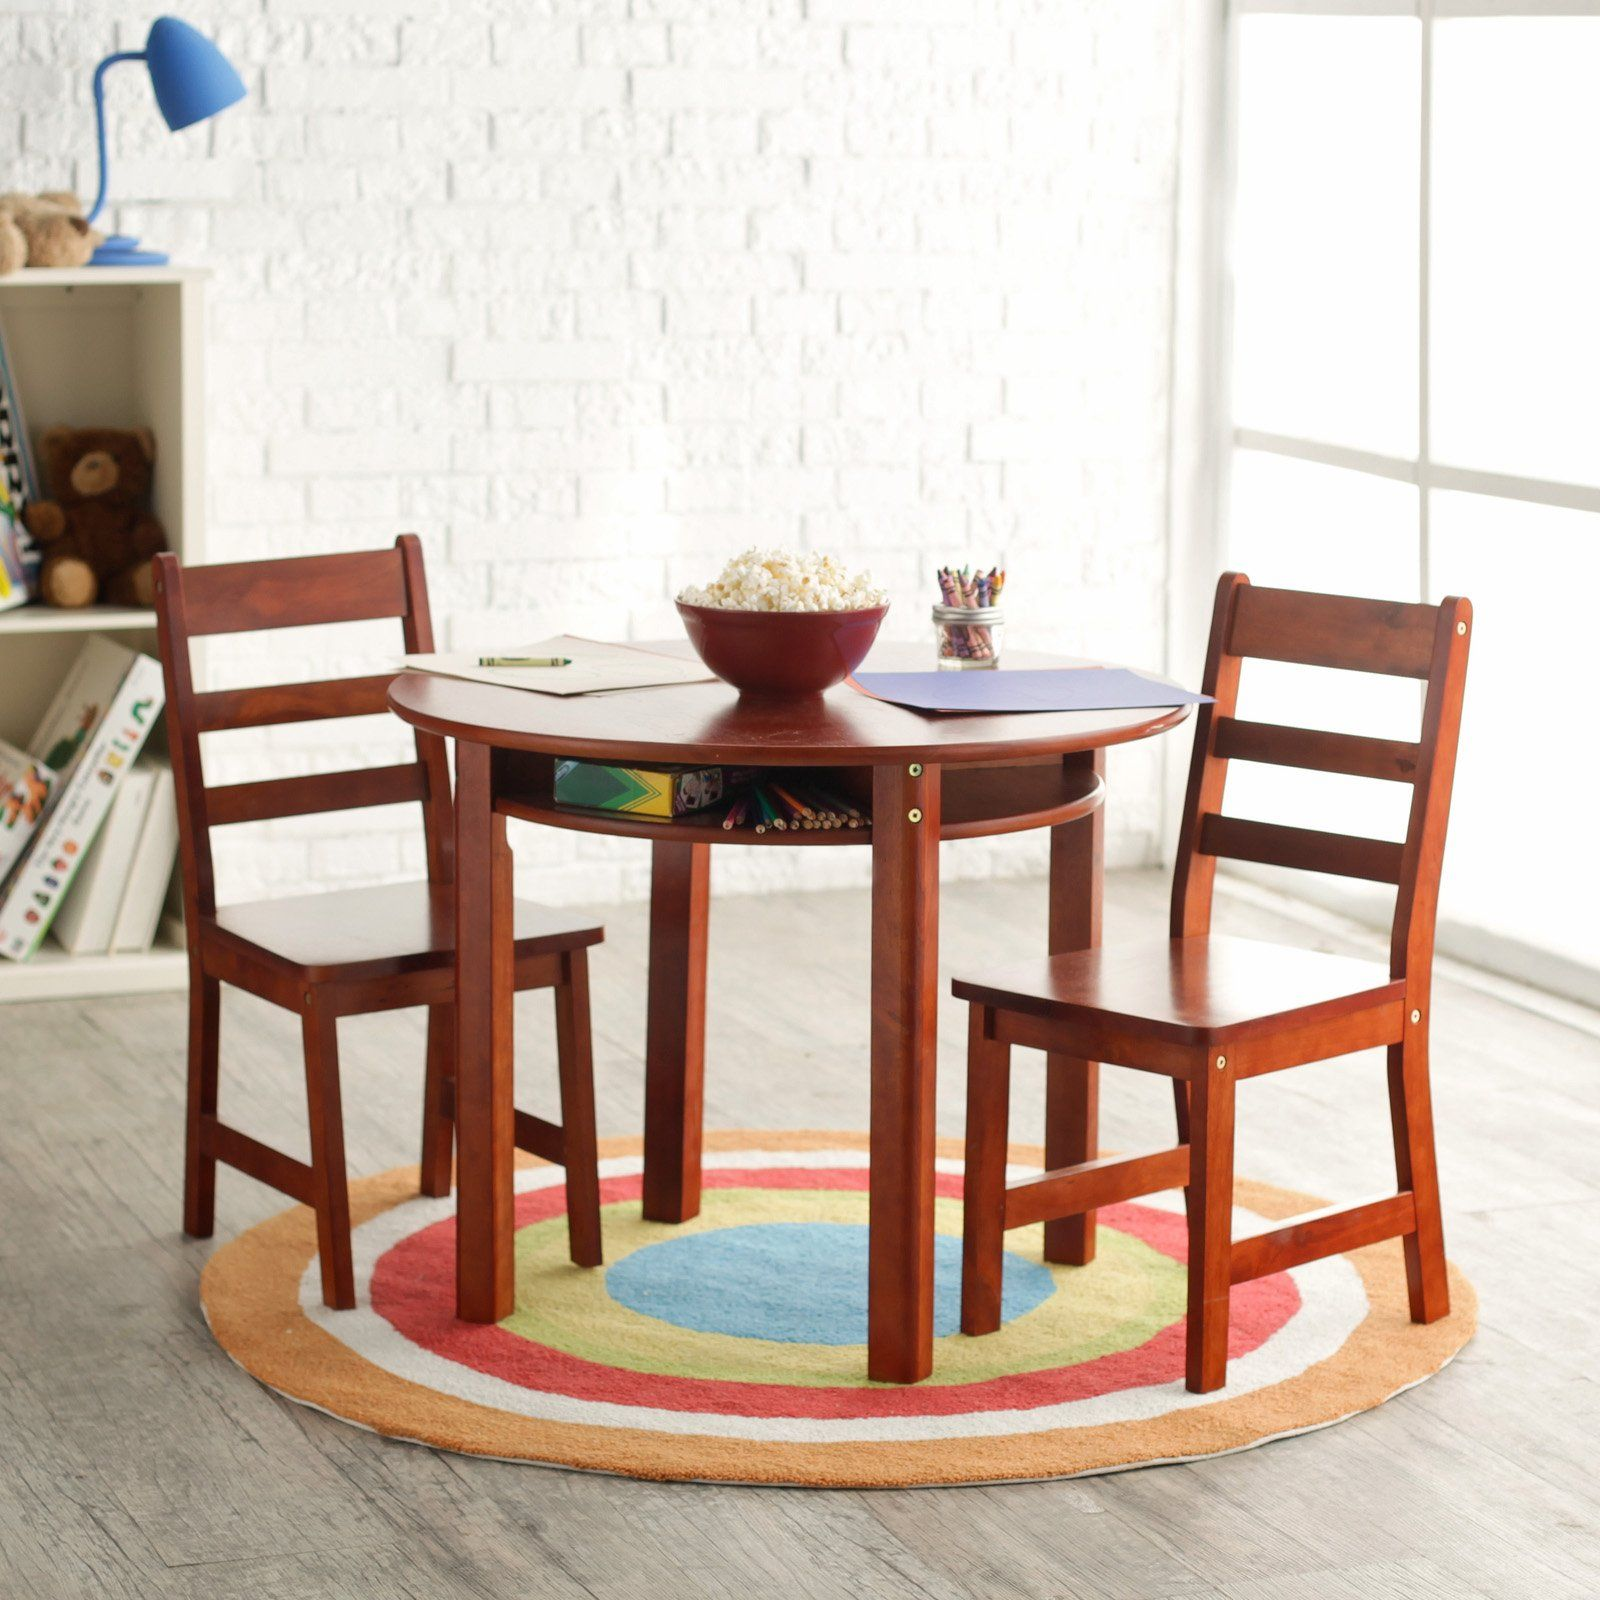 Lipper Childrens Round Table and Chair Set - $126.98 @hayneedle & Have to have it. Lipper Childrens Round Table and Chair Set ...